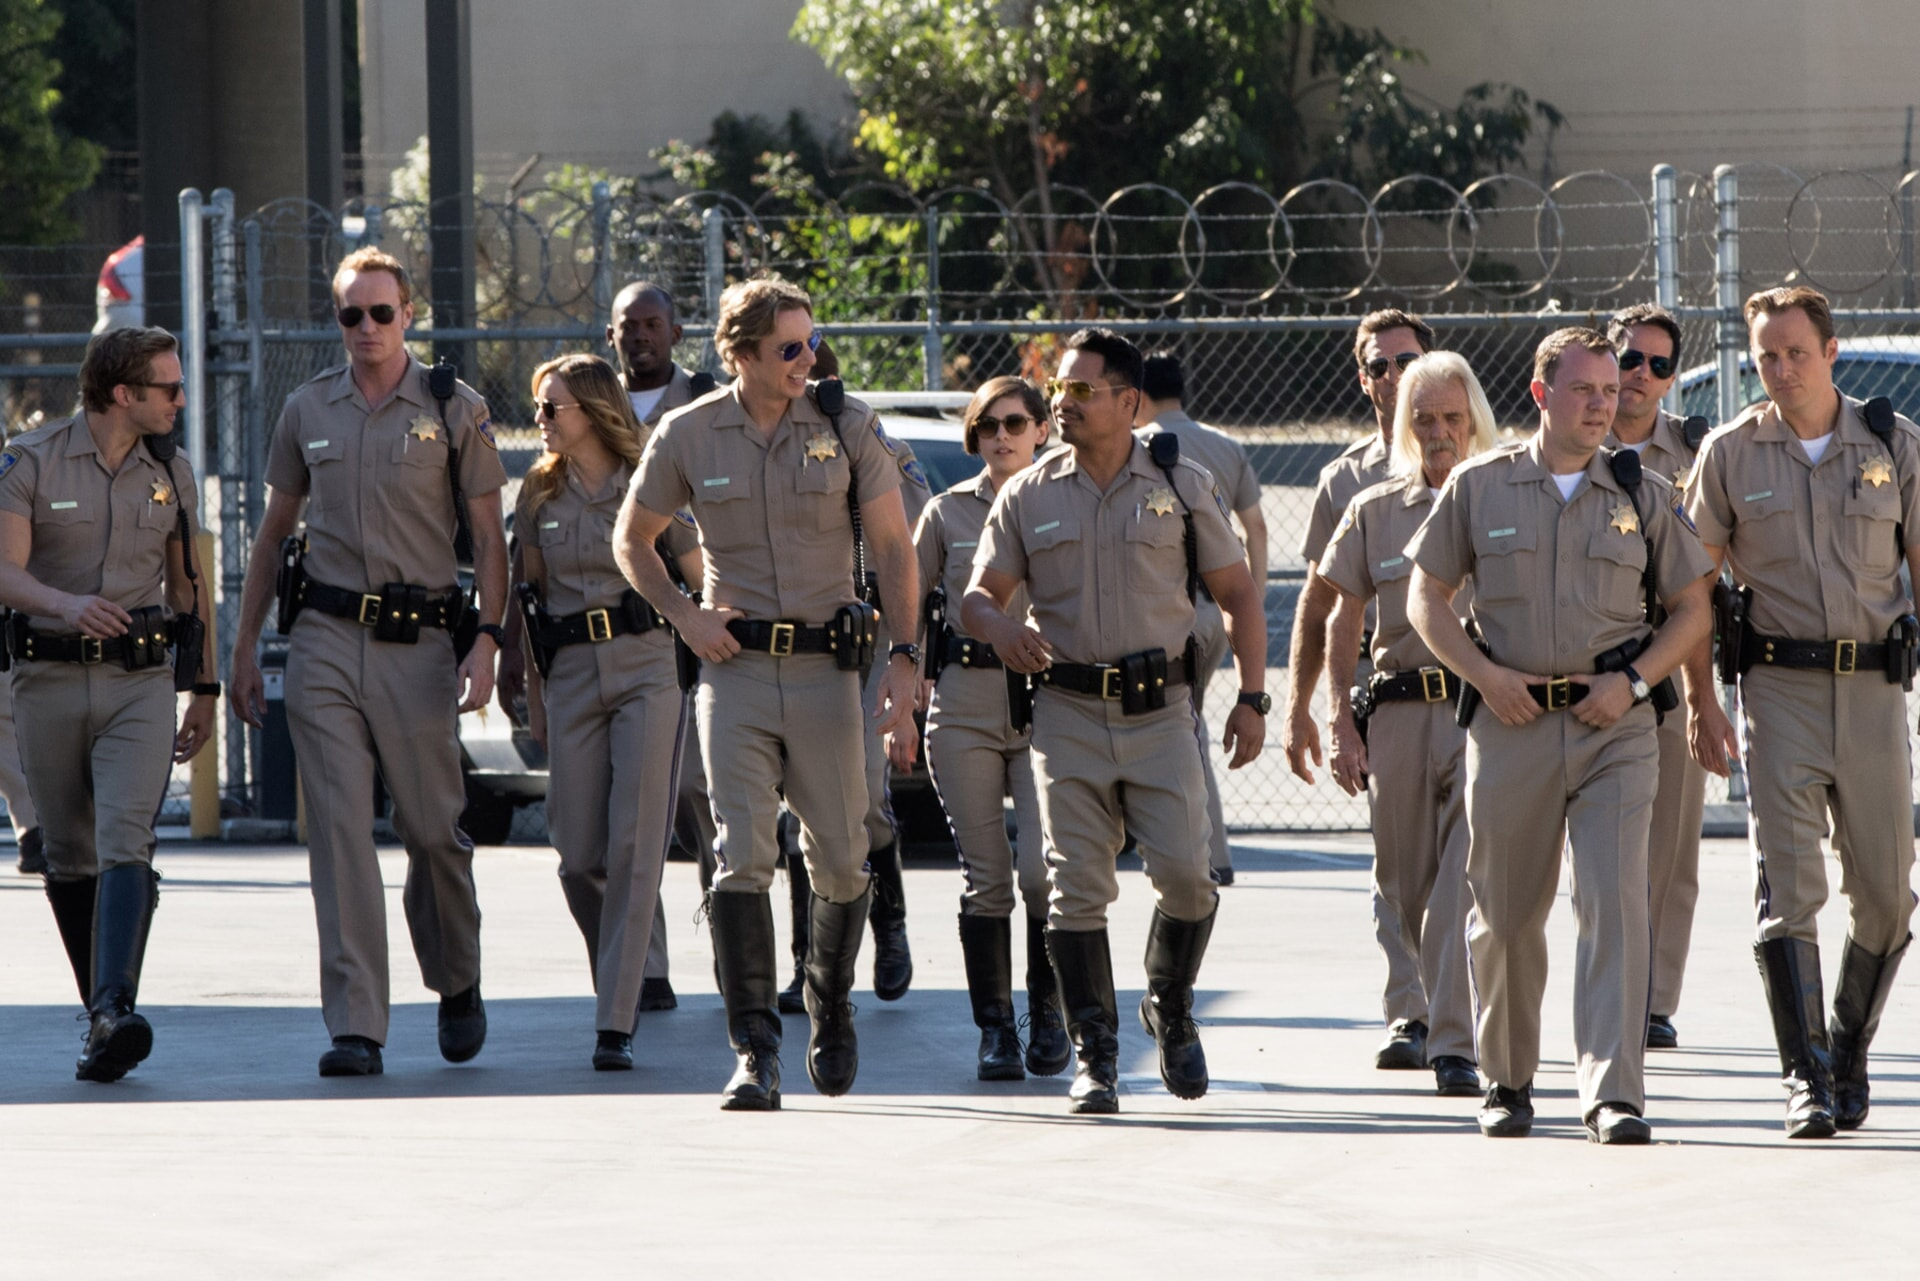 """RYAN HANSEN as Brian Grieves, JESS ROWLAND as Rathbun, JESSICA McNAMEE as Lindsey Taylor, DAX SHEPARD as Jon, ROSA SALAZAR as Ava Perez and MICHAEL PEÑA as Ponch in Warner Bros. Pictures' action comedy """"CHIPS,"""" a Warner Bros. Pictures release."""